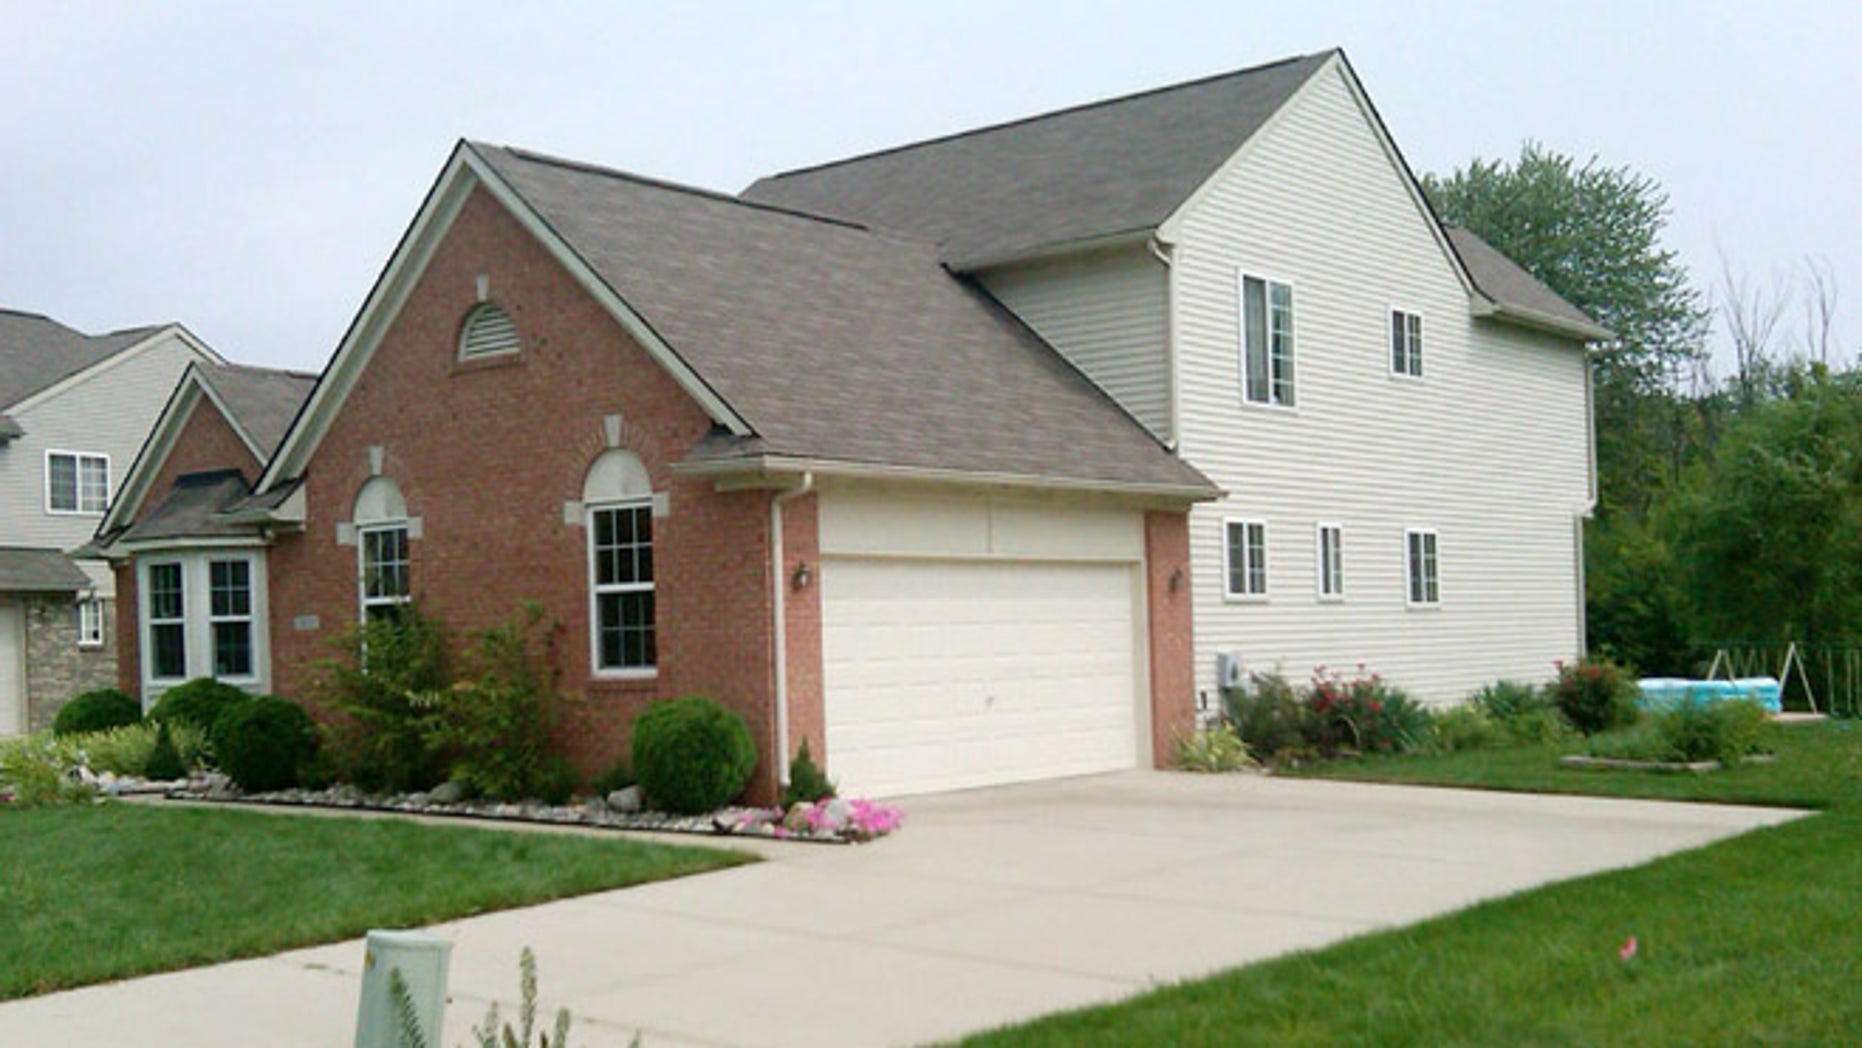 Aug. 16, 2012: A home in Van Buren Township, Mich., where police say they found a woman and her two young sons dead when they went there to notify the family of a fiery, fatal crash in Indiana.